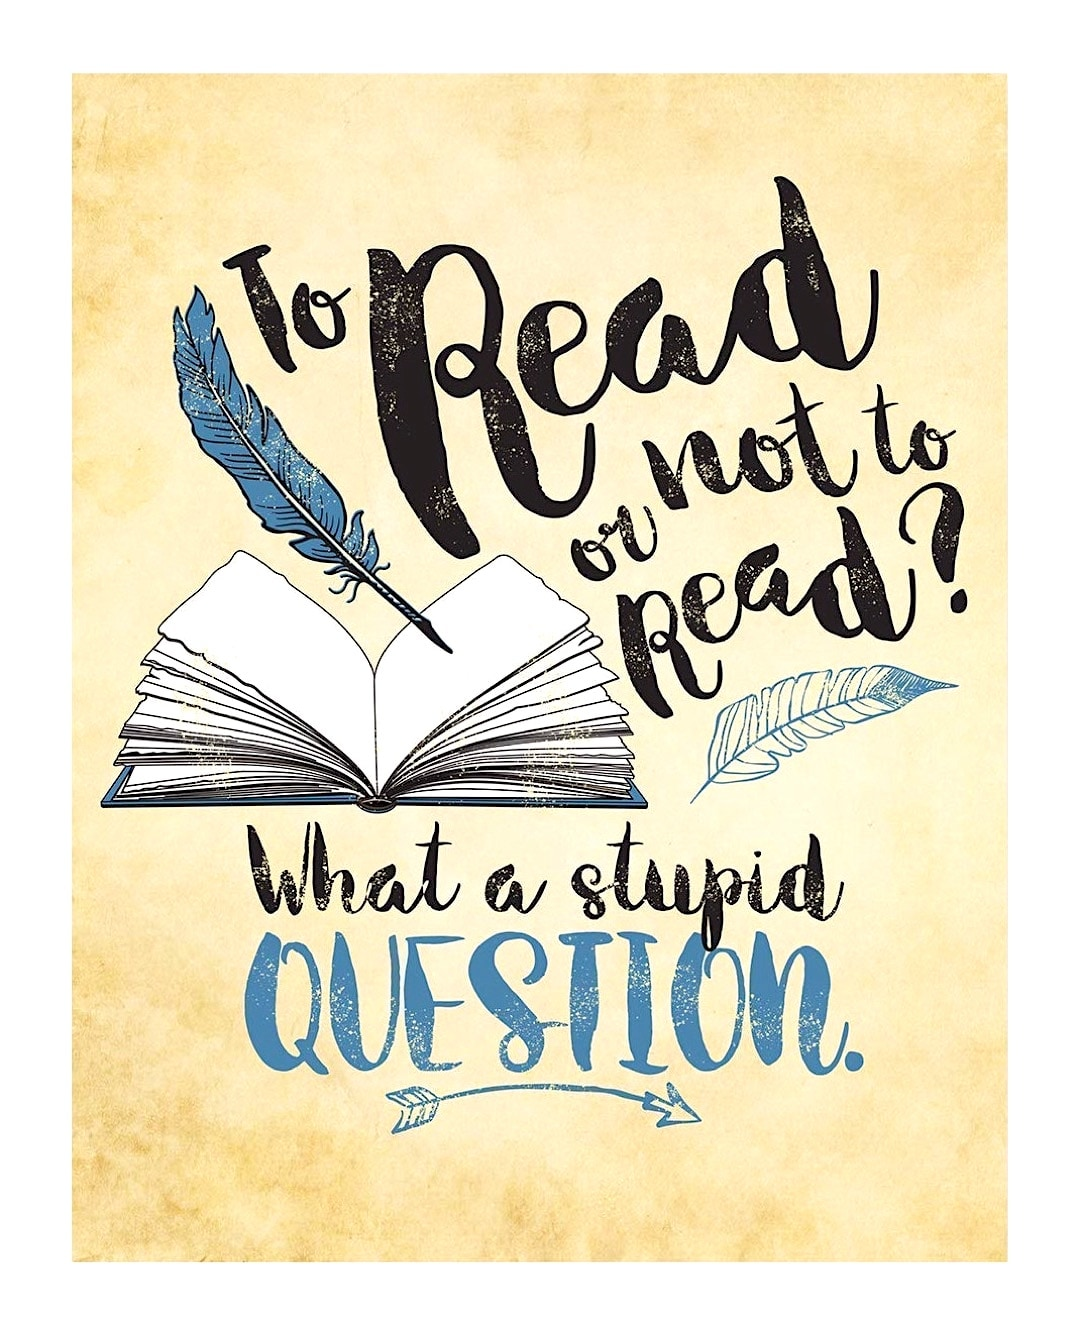 To read or not to read - best read posters